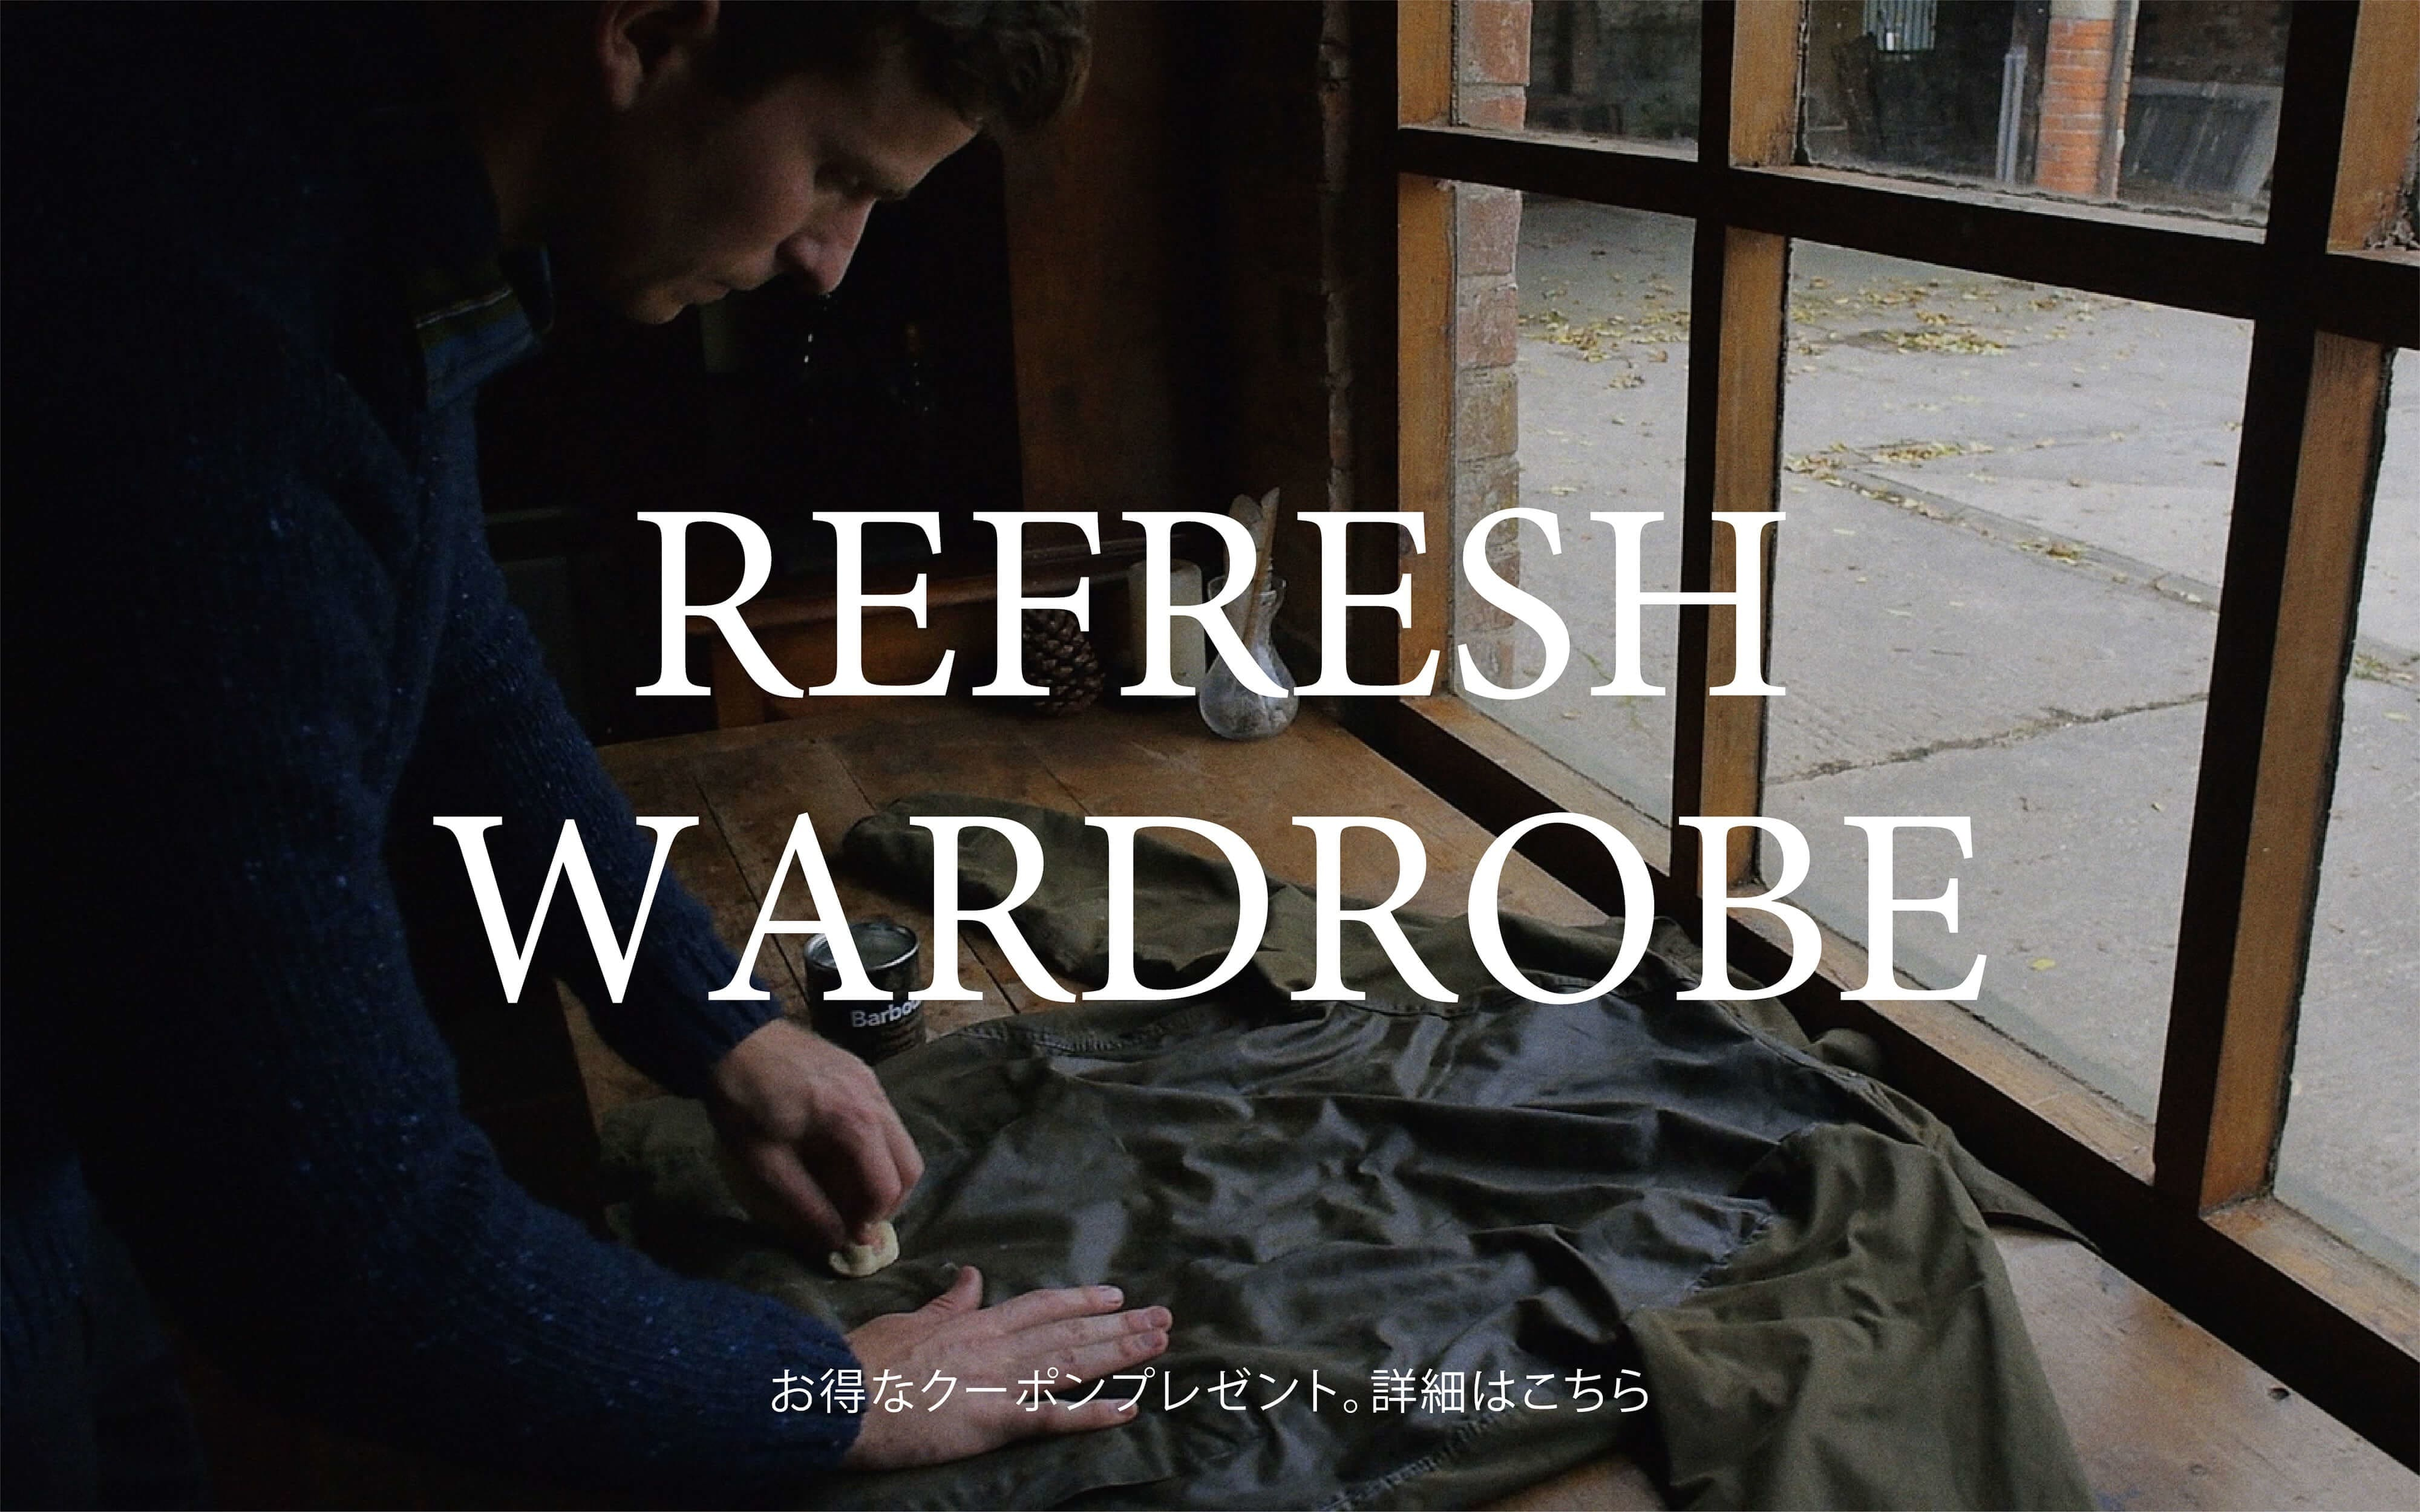 REFRESH WARDROBE キャンペーン